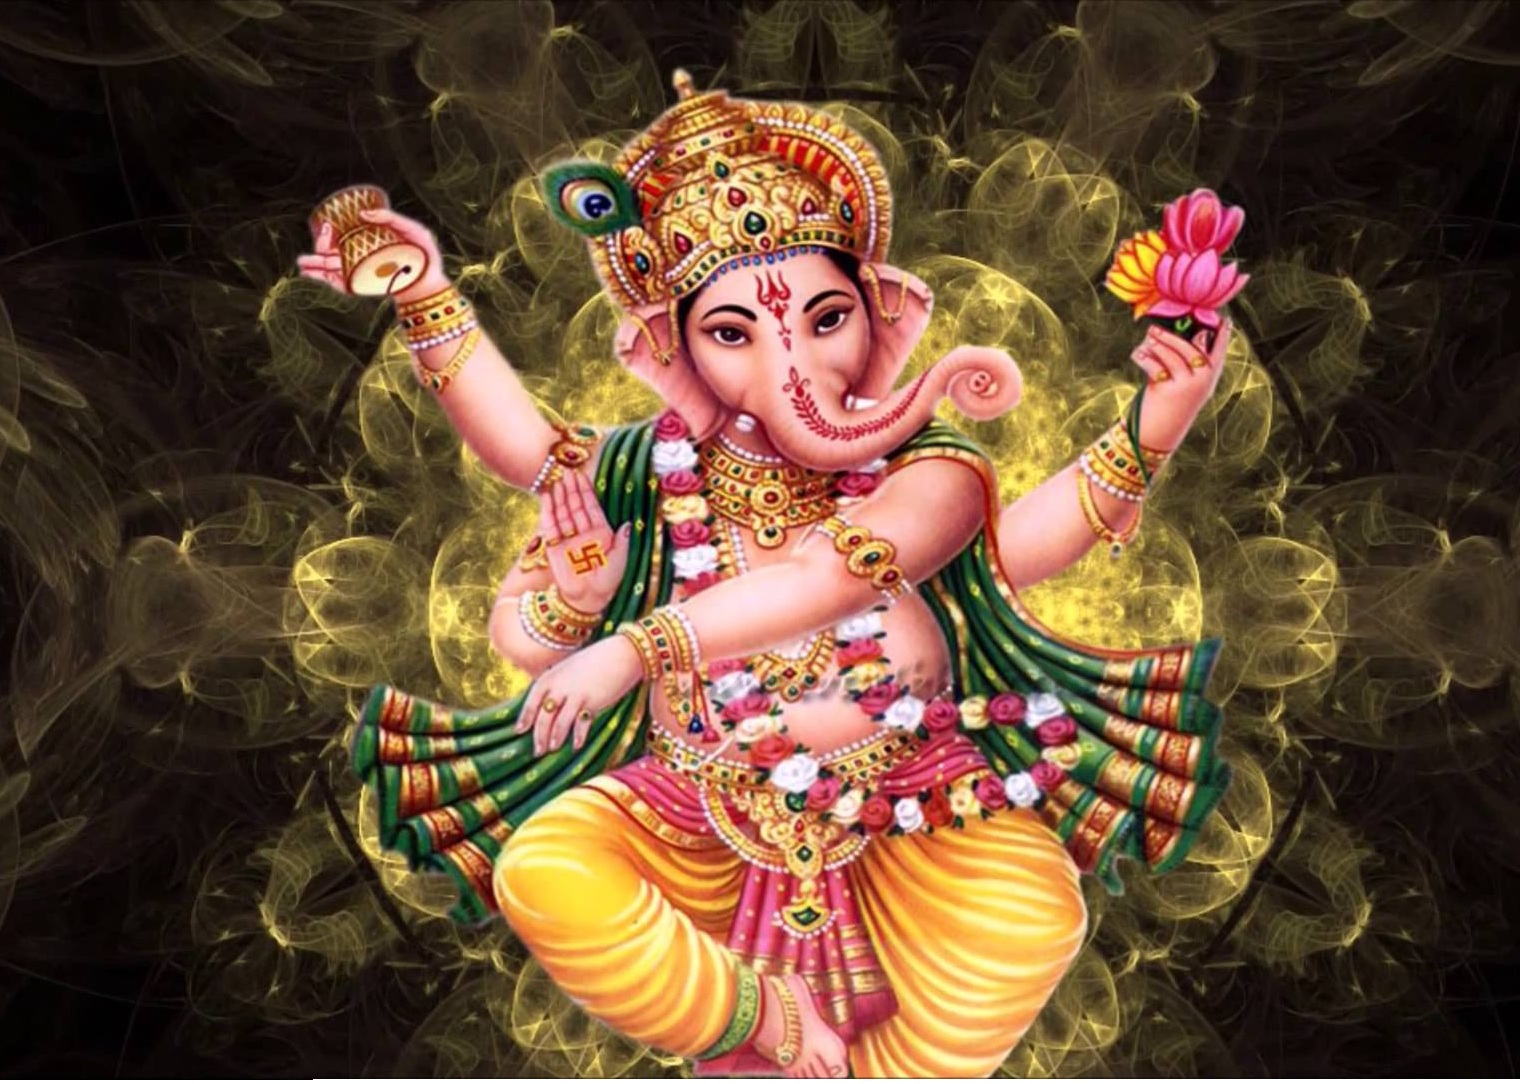 Lord Ganesha Hd Wallpapers: Lord/Bhagwan Ganesh Images, Wallpapers, Pictures, Photos